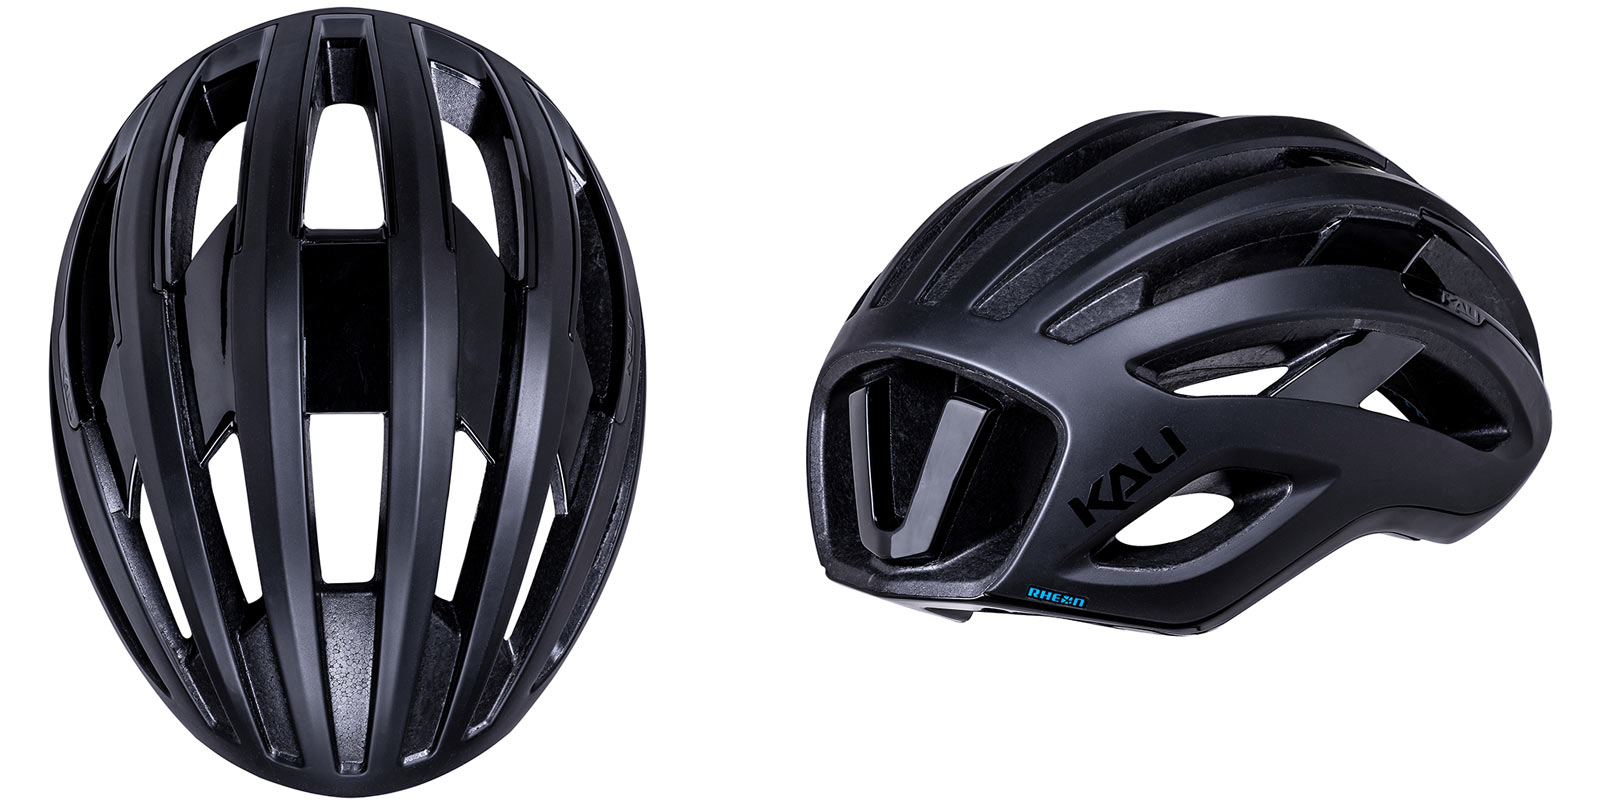 kali grit road and gravel bike helmet shown from rear and top